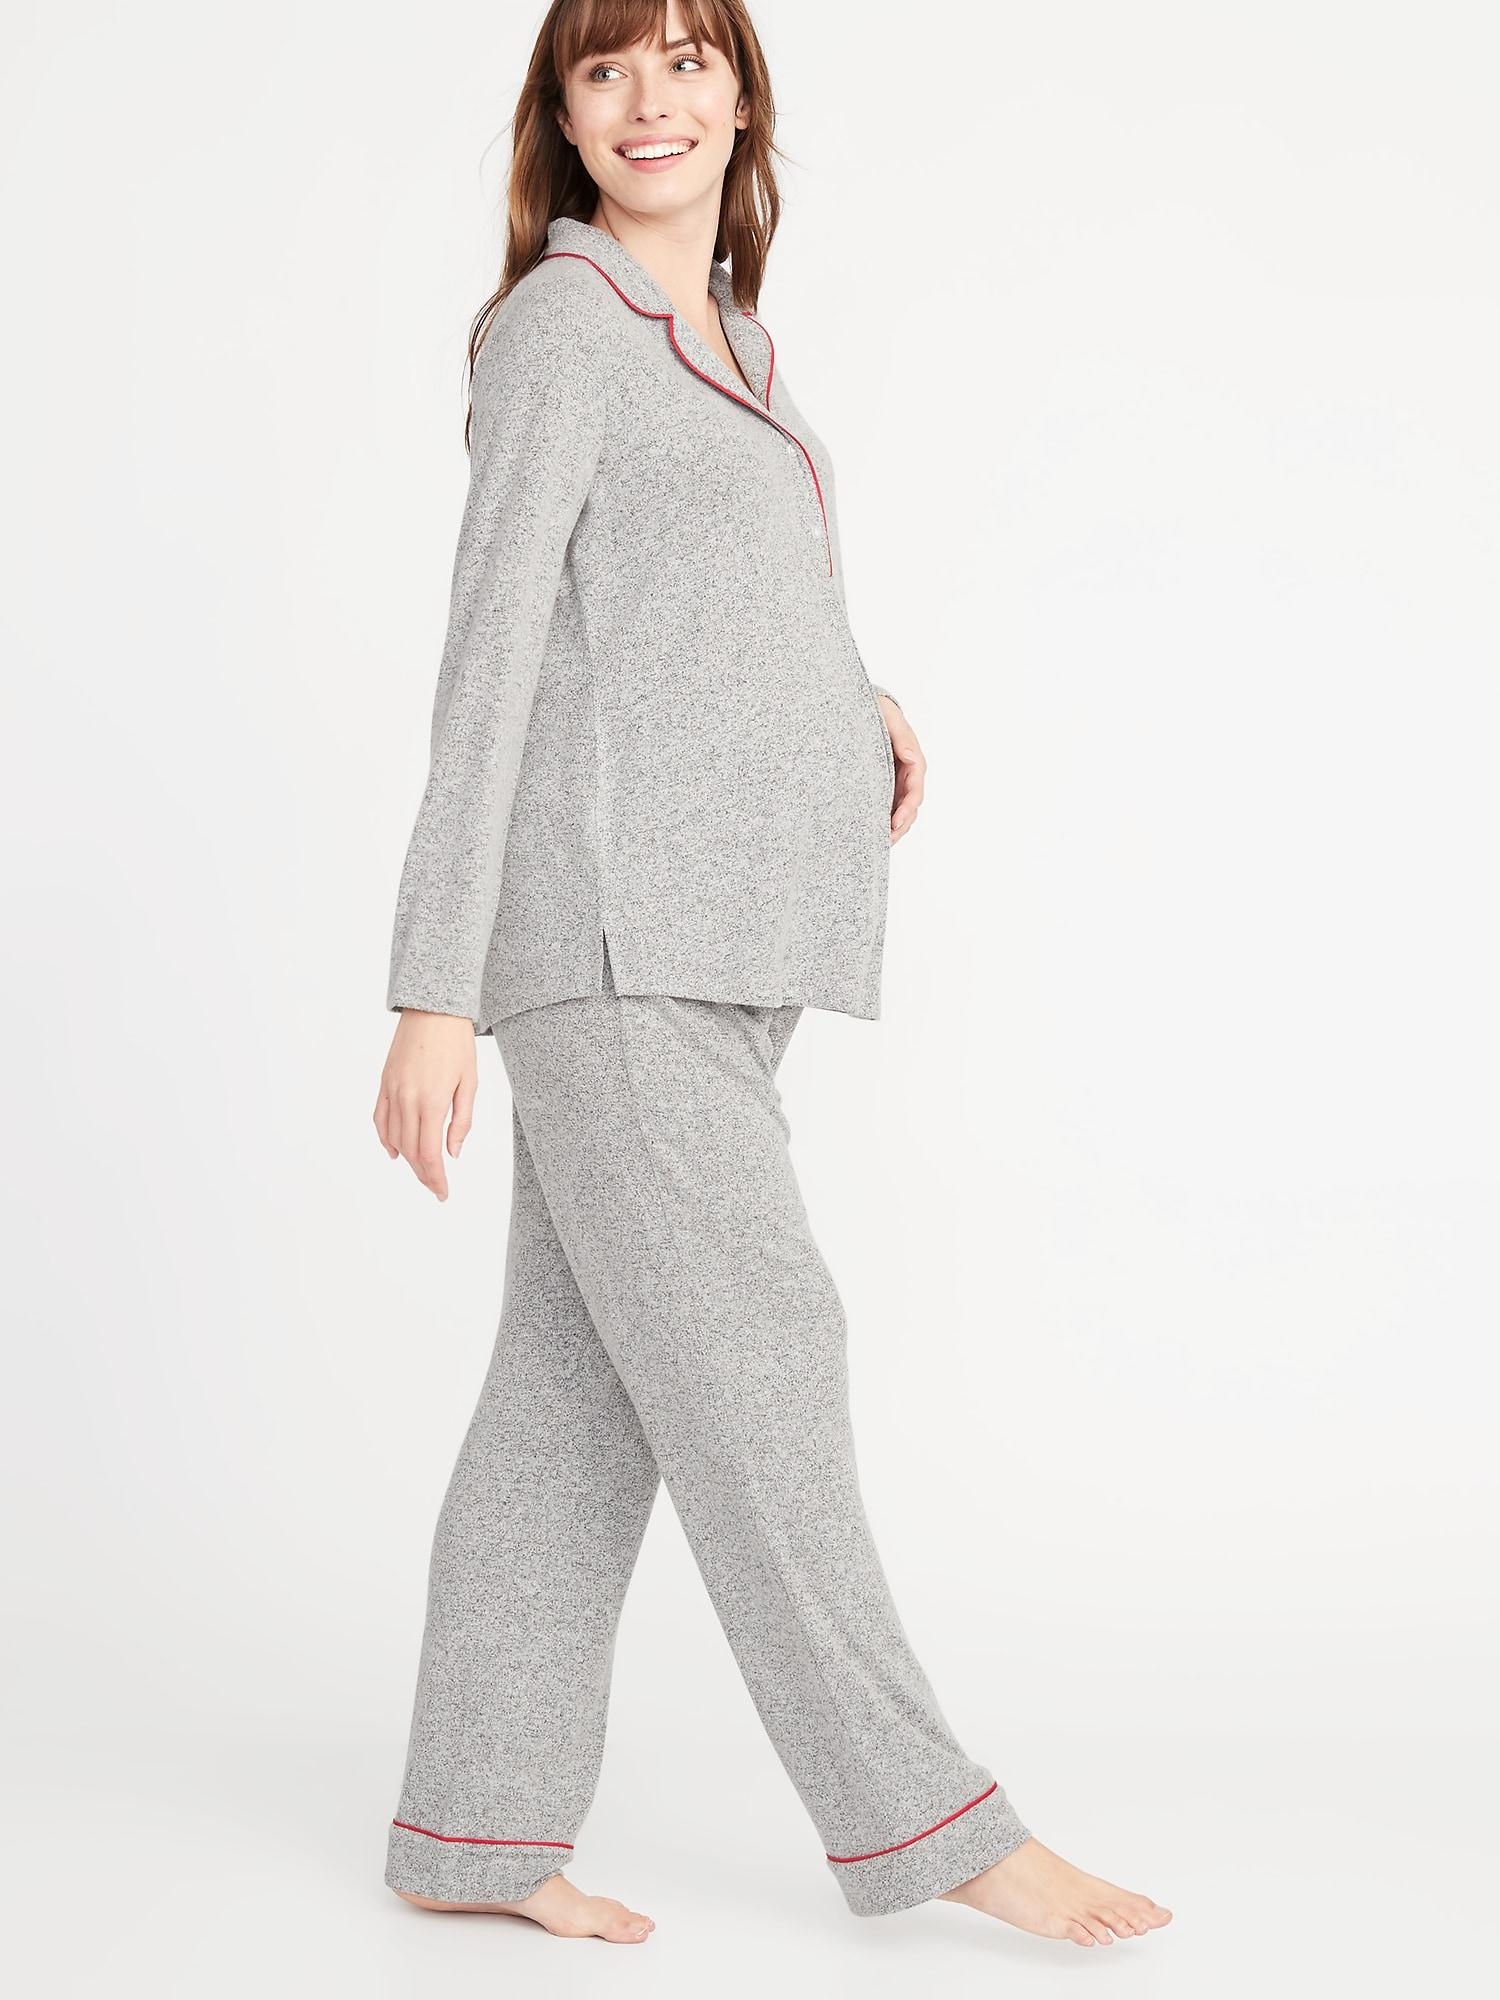 842d7a29b98 Lyst - Old Navy Maternity Plush-knit Jersey Sleep Set in Gray